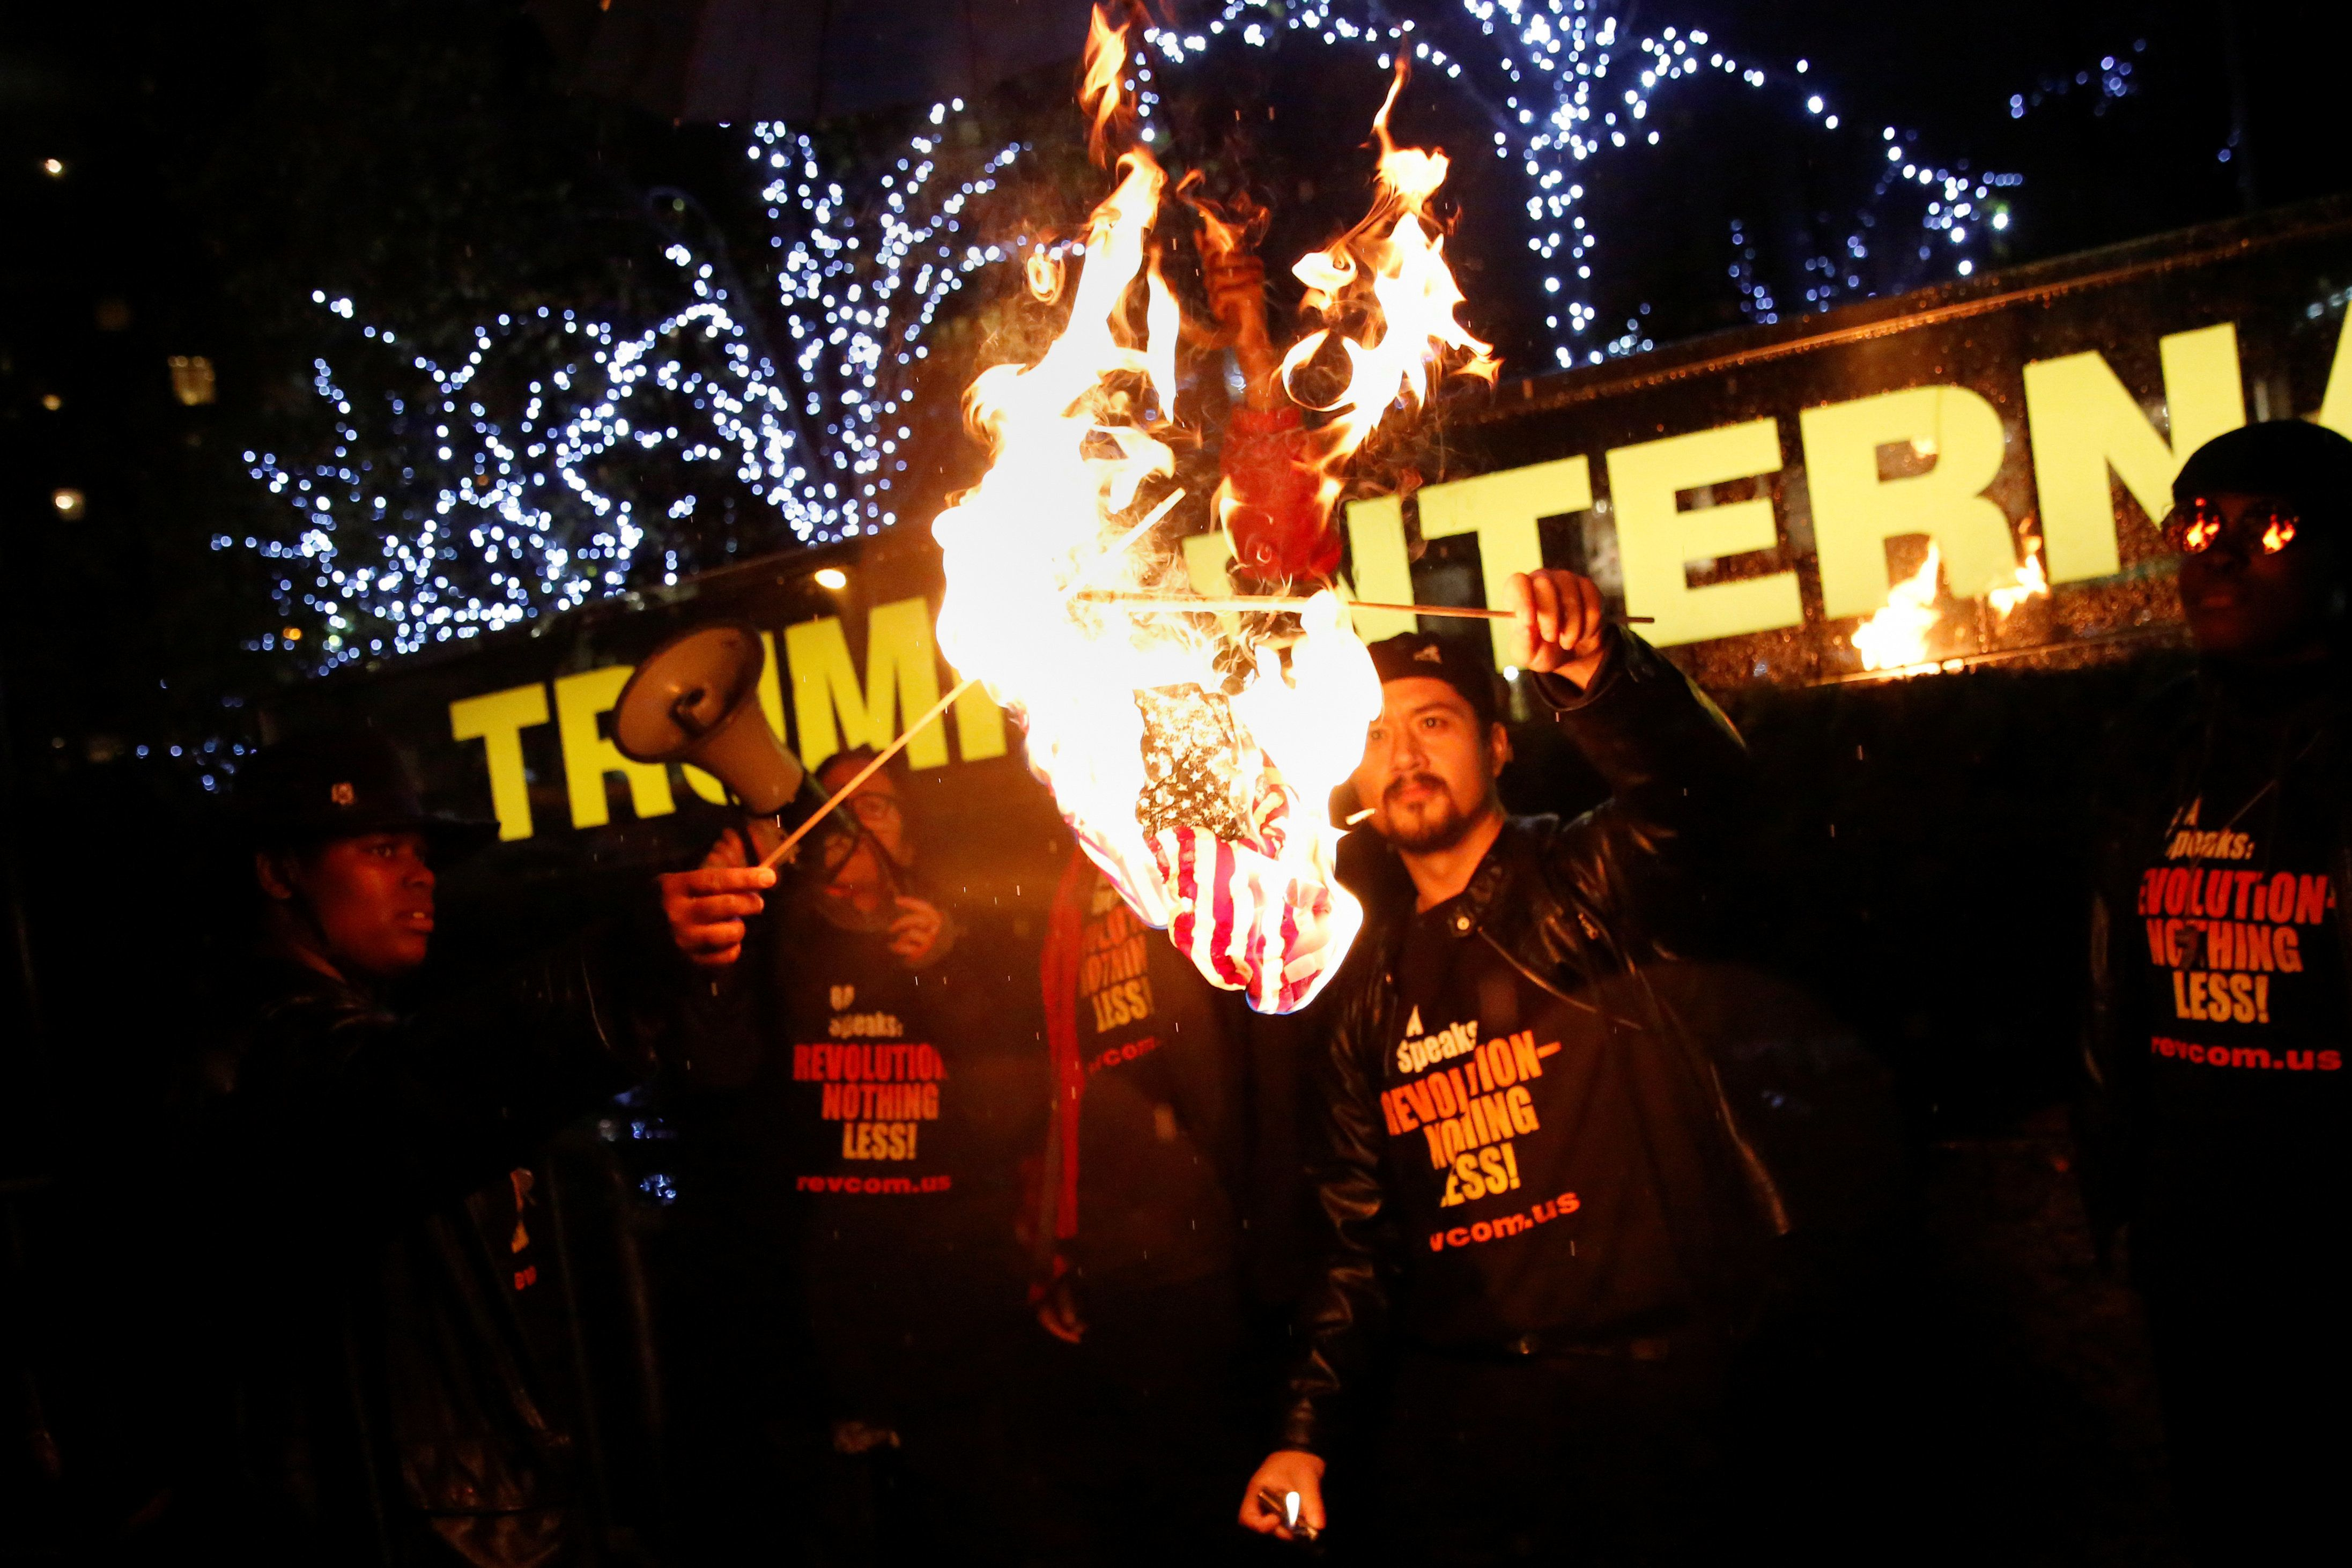 """Supporters of the """"NYC Revolution Club"""" burn the U.S. flag outside the Trump International Hotel and Tower in New York, U.S., November 29, 2016. REUTERS/Shannon Stapleton"""